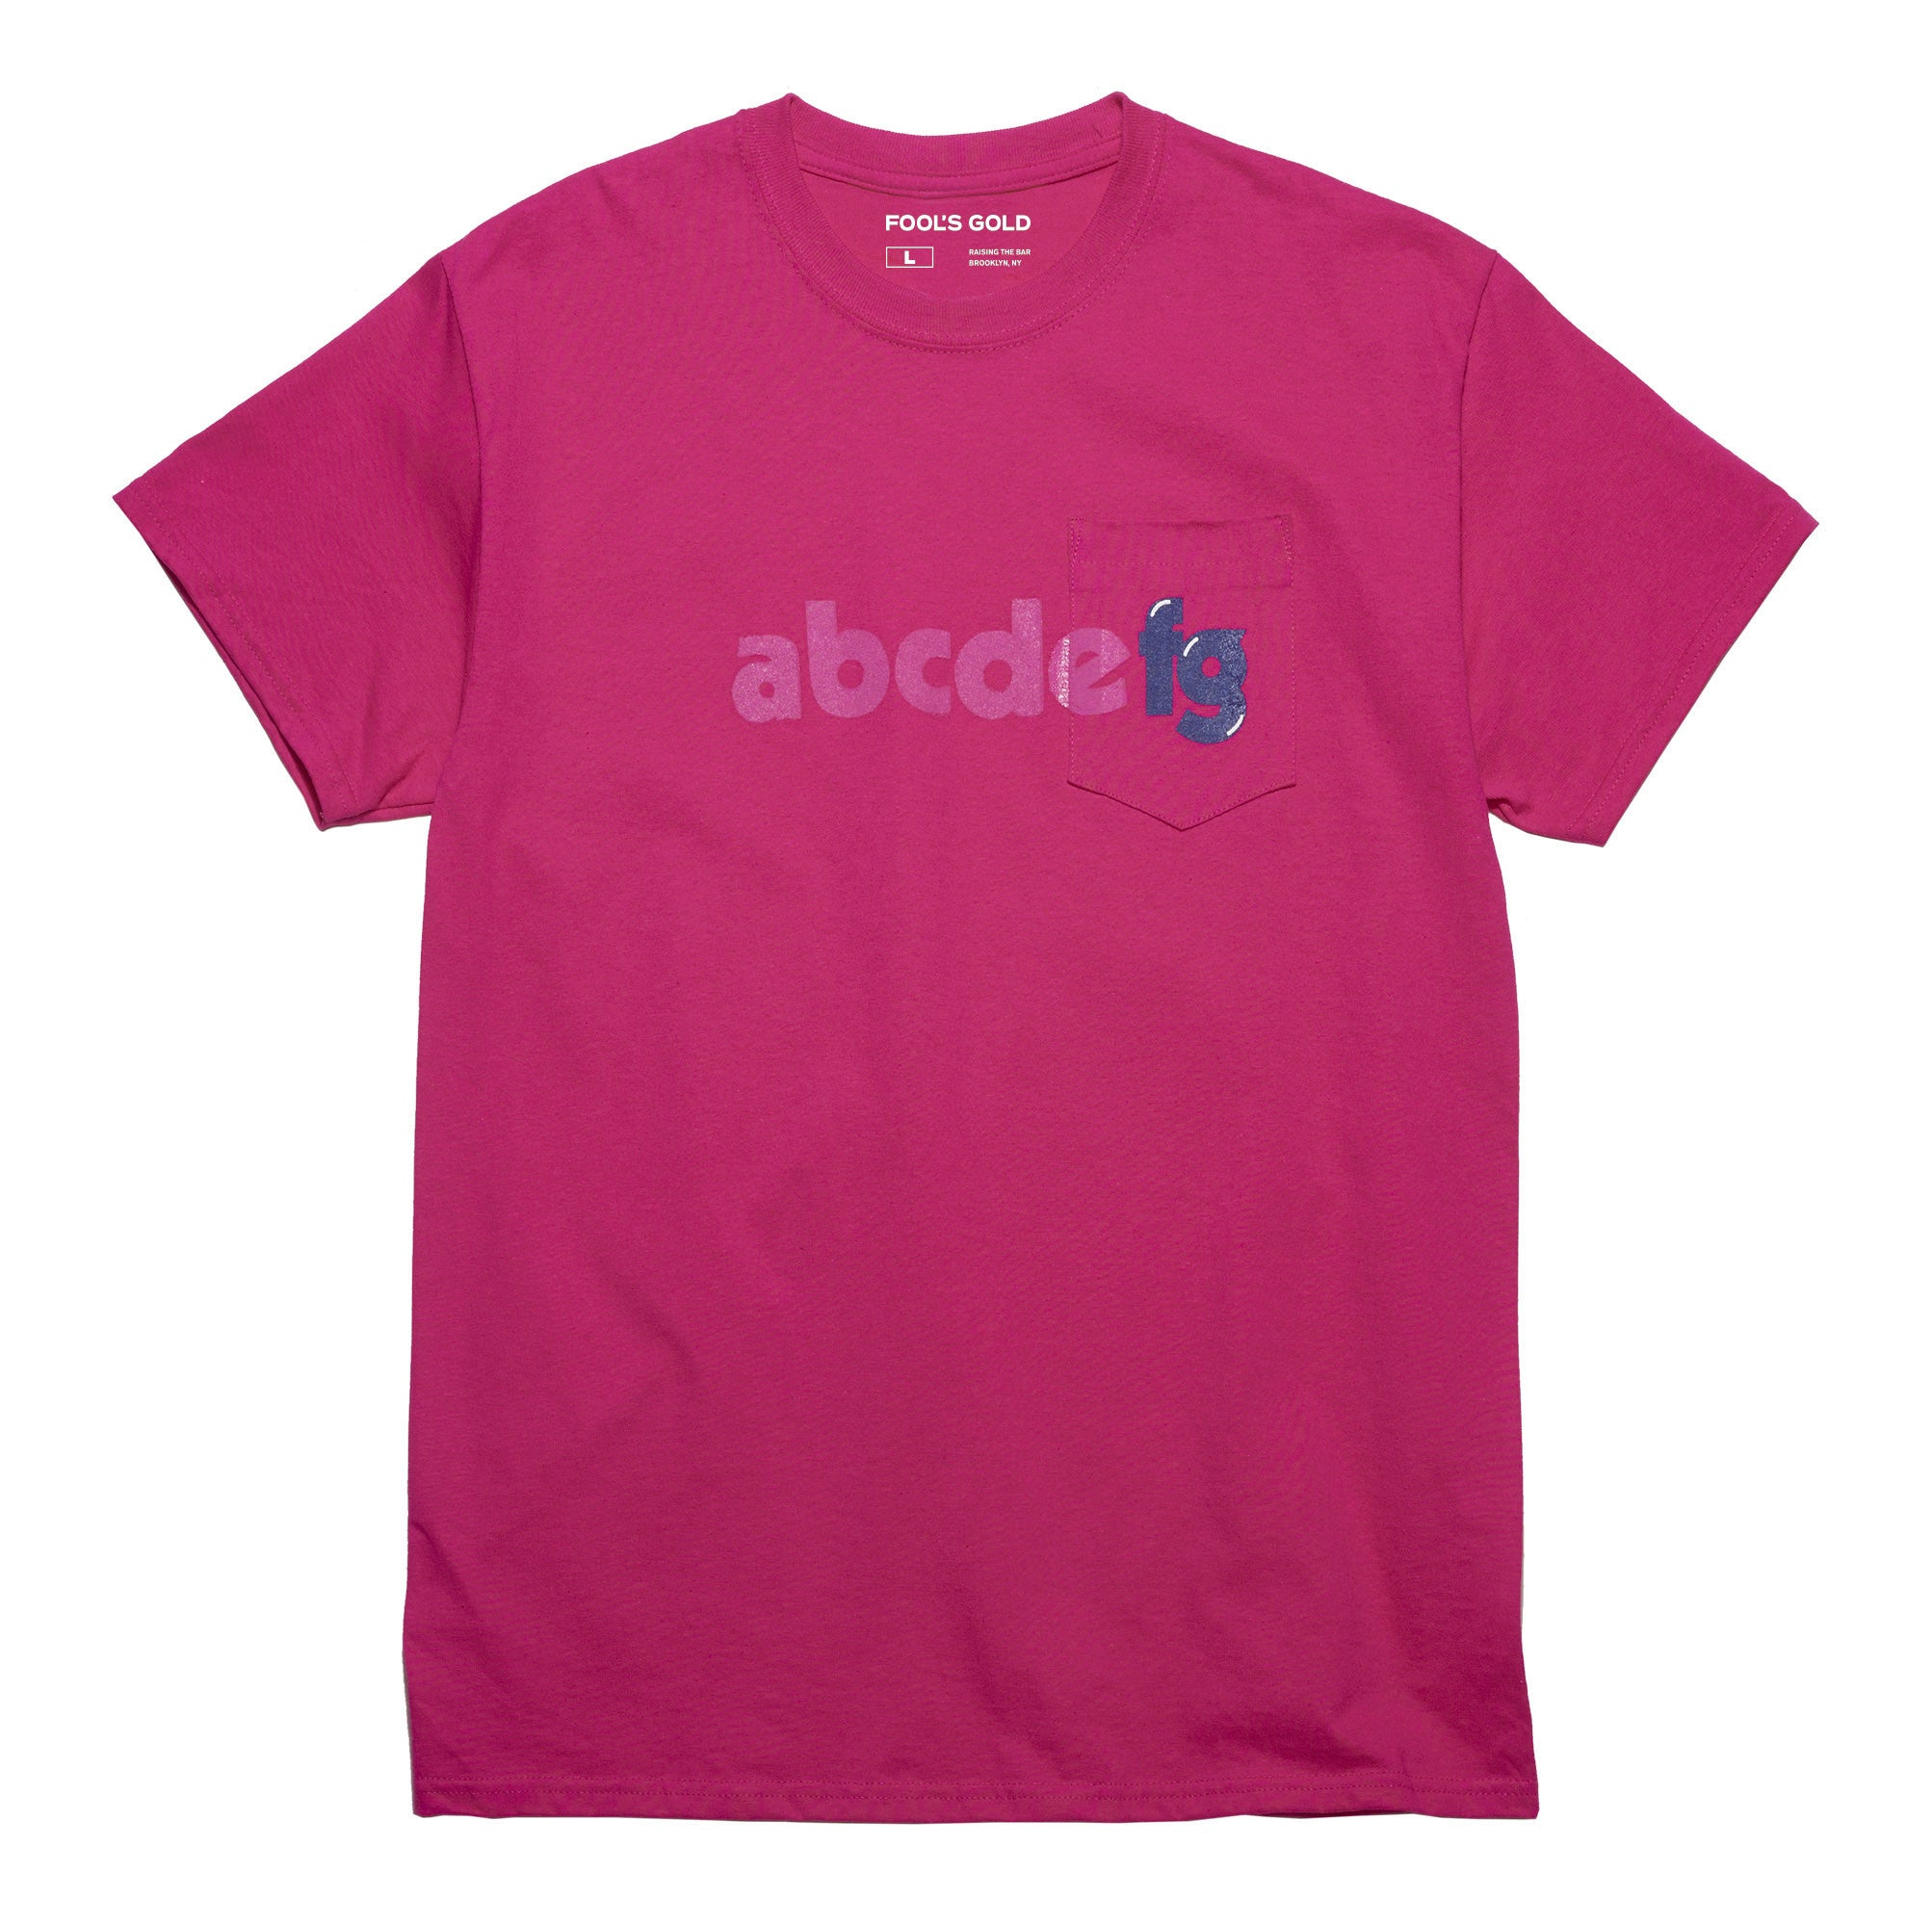 "Fool's Gold ""Alphabetical"" Tee - Pink"